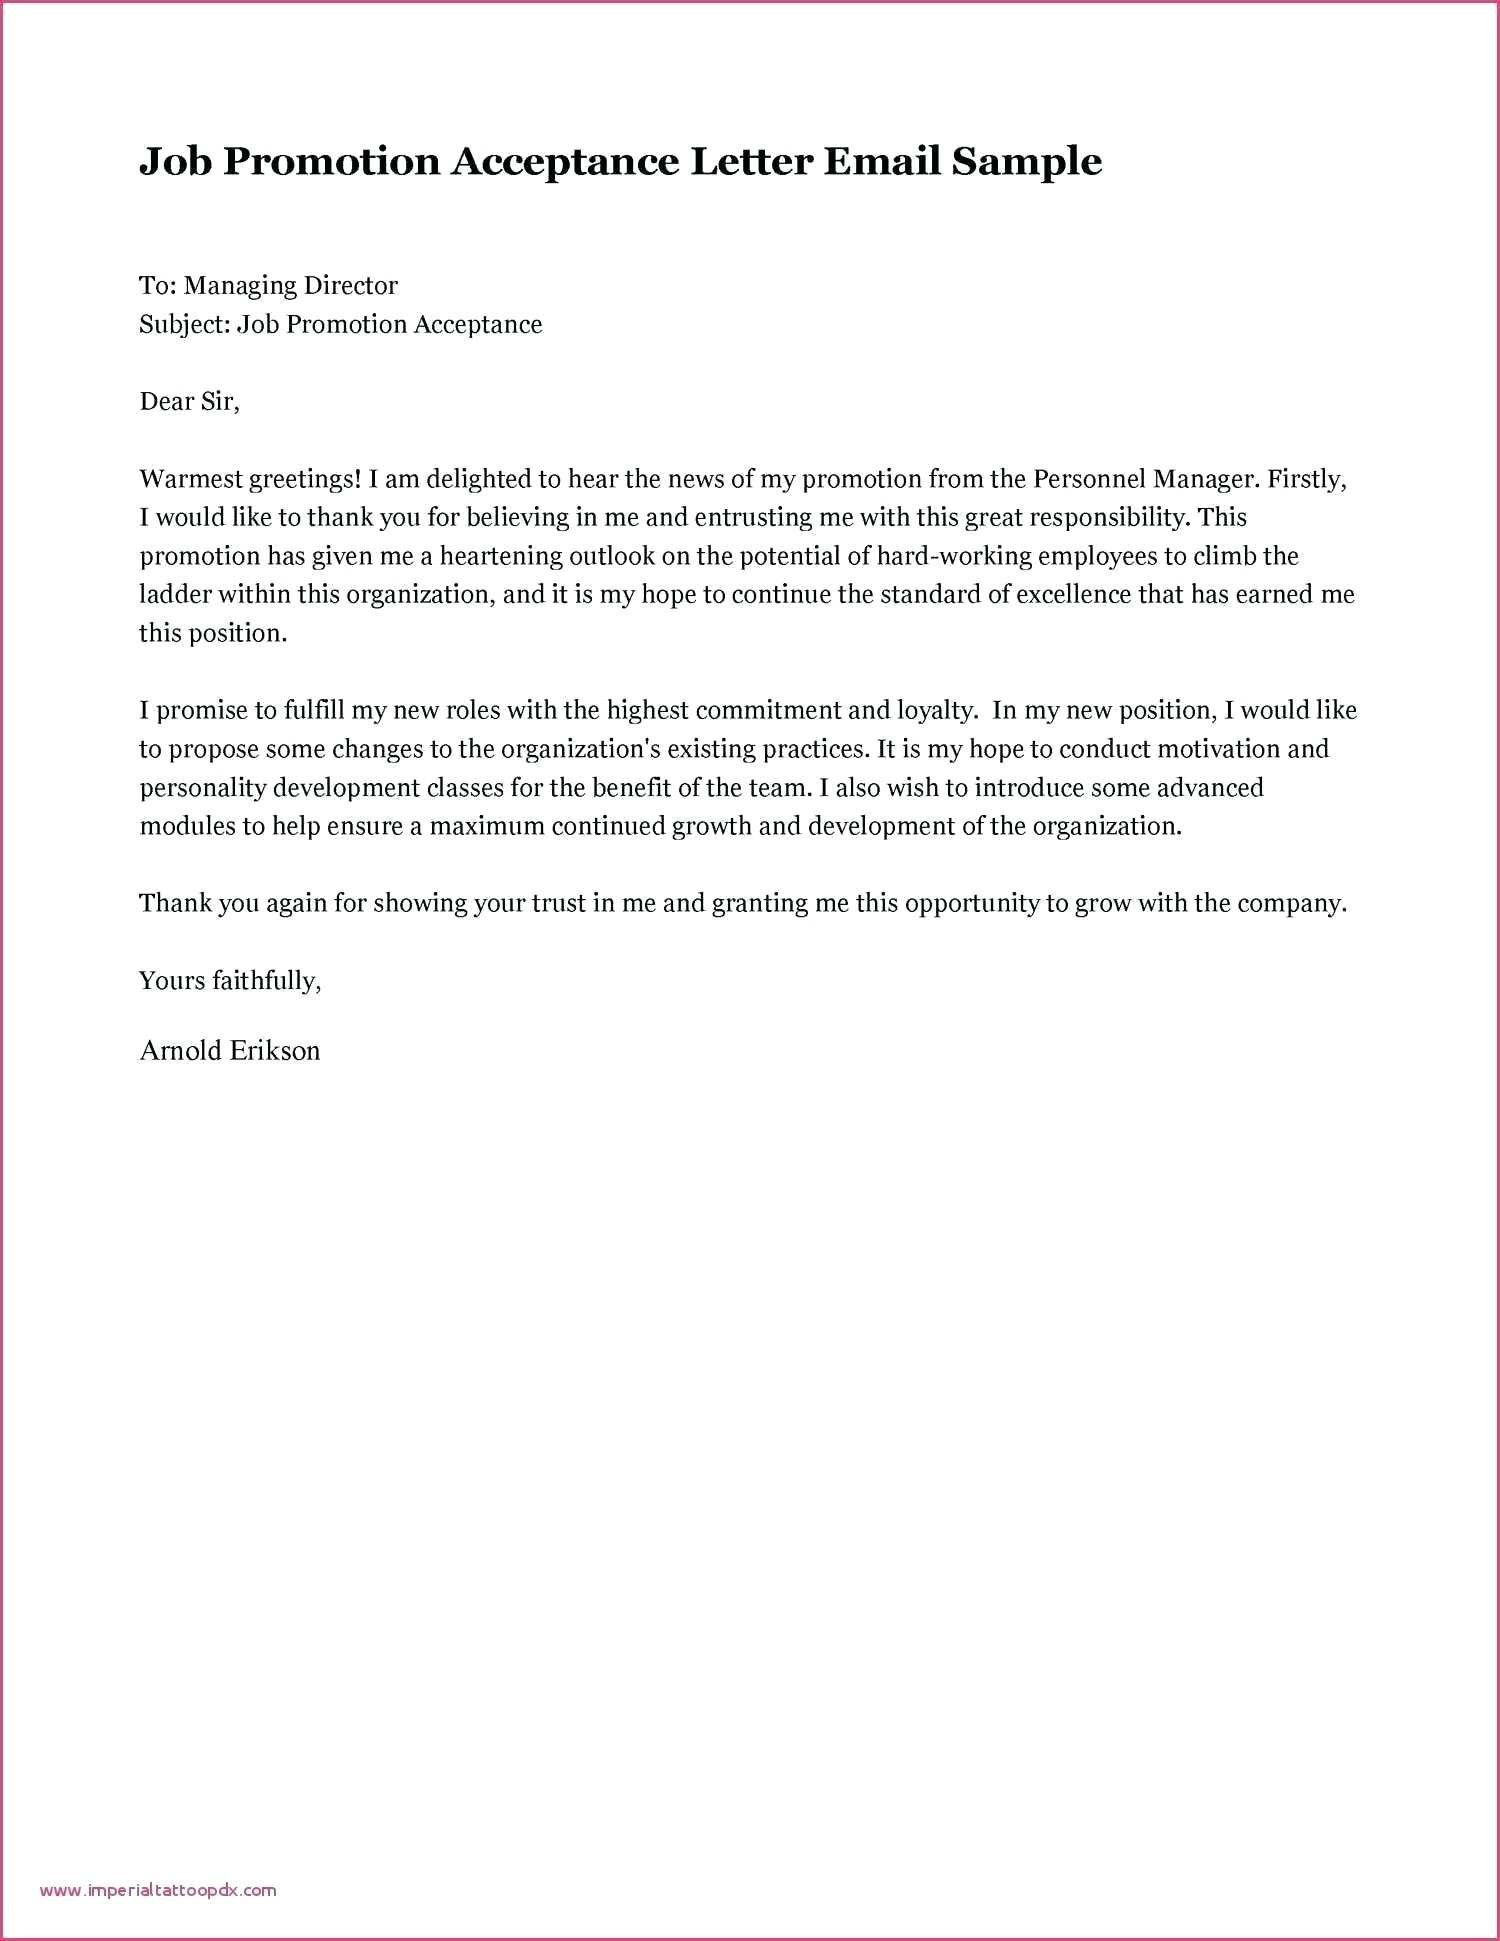 Download Fresh Job Offer Letter Acceptance Email